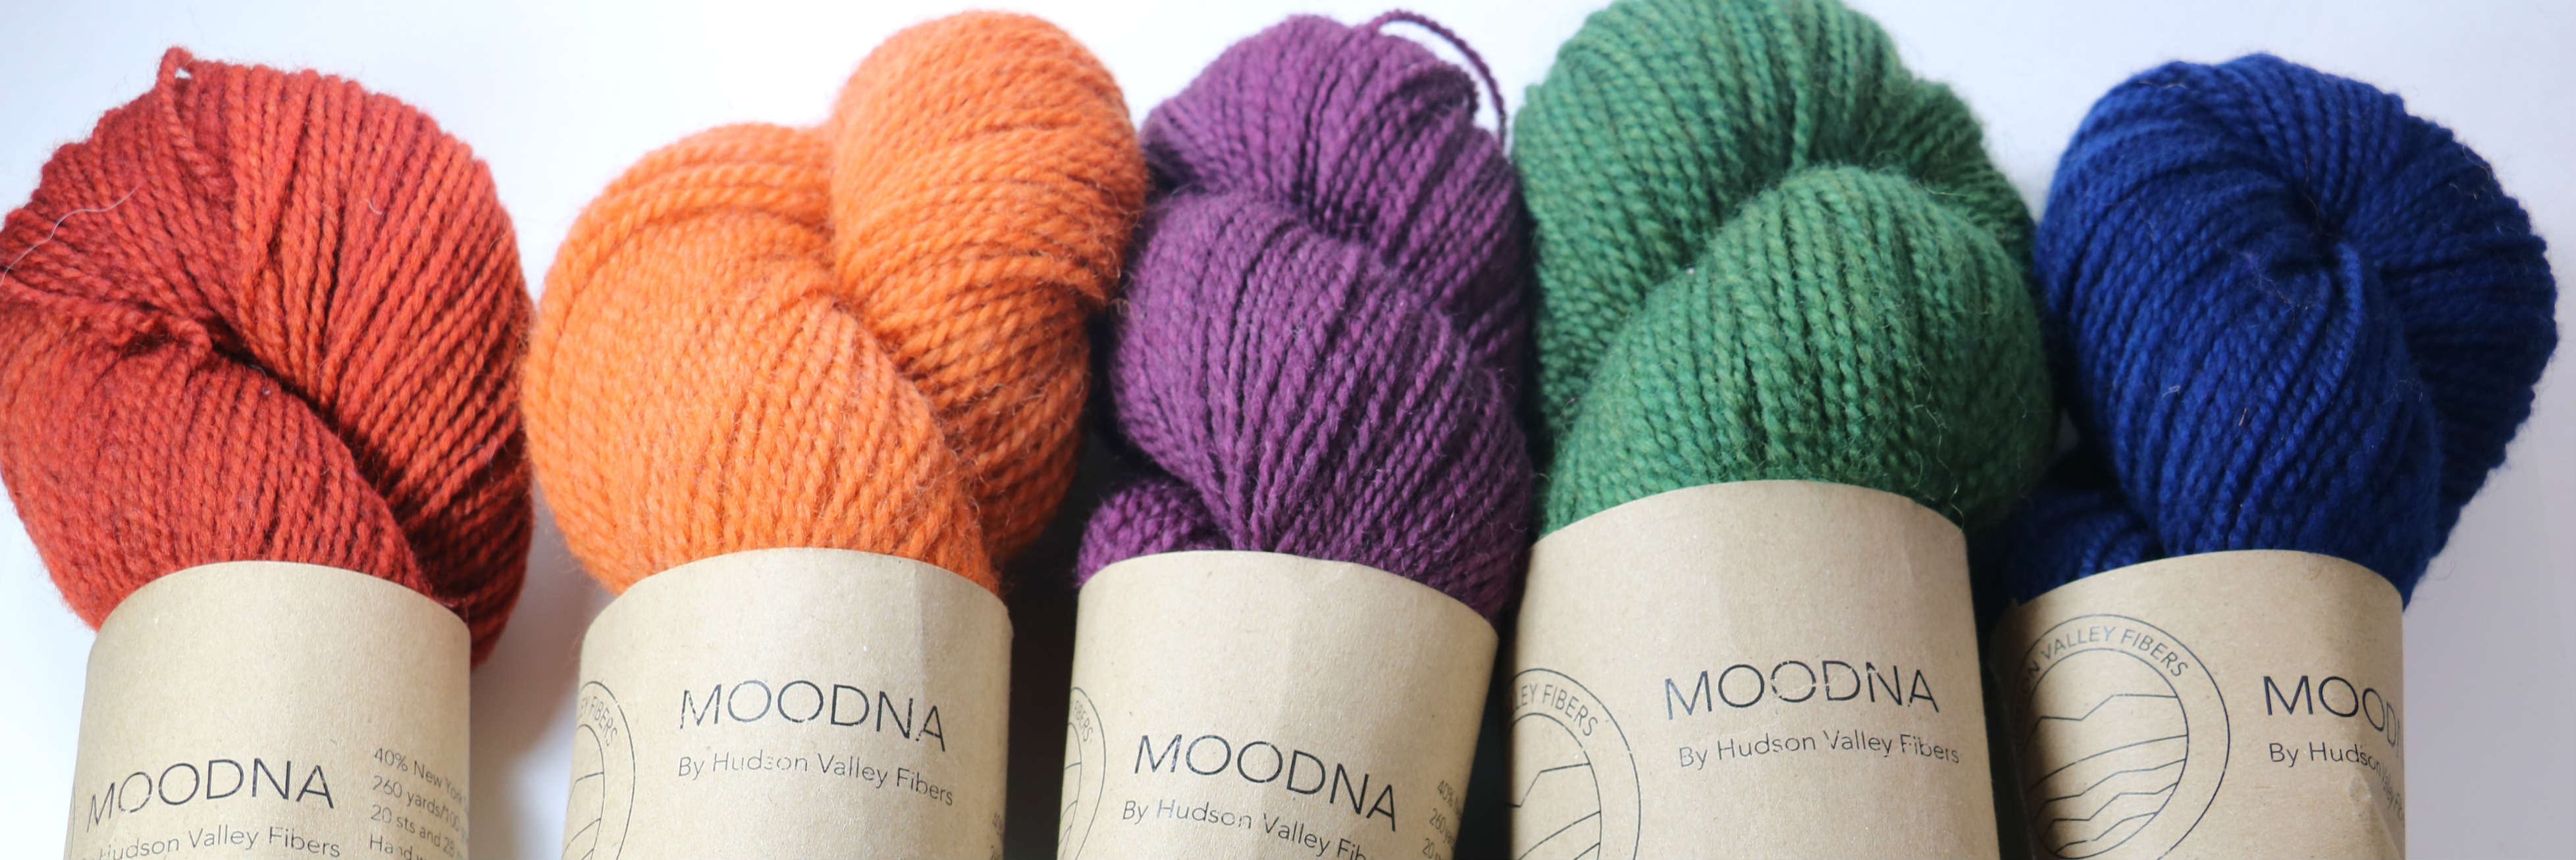 Moodna Colors